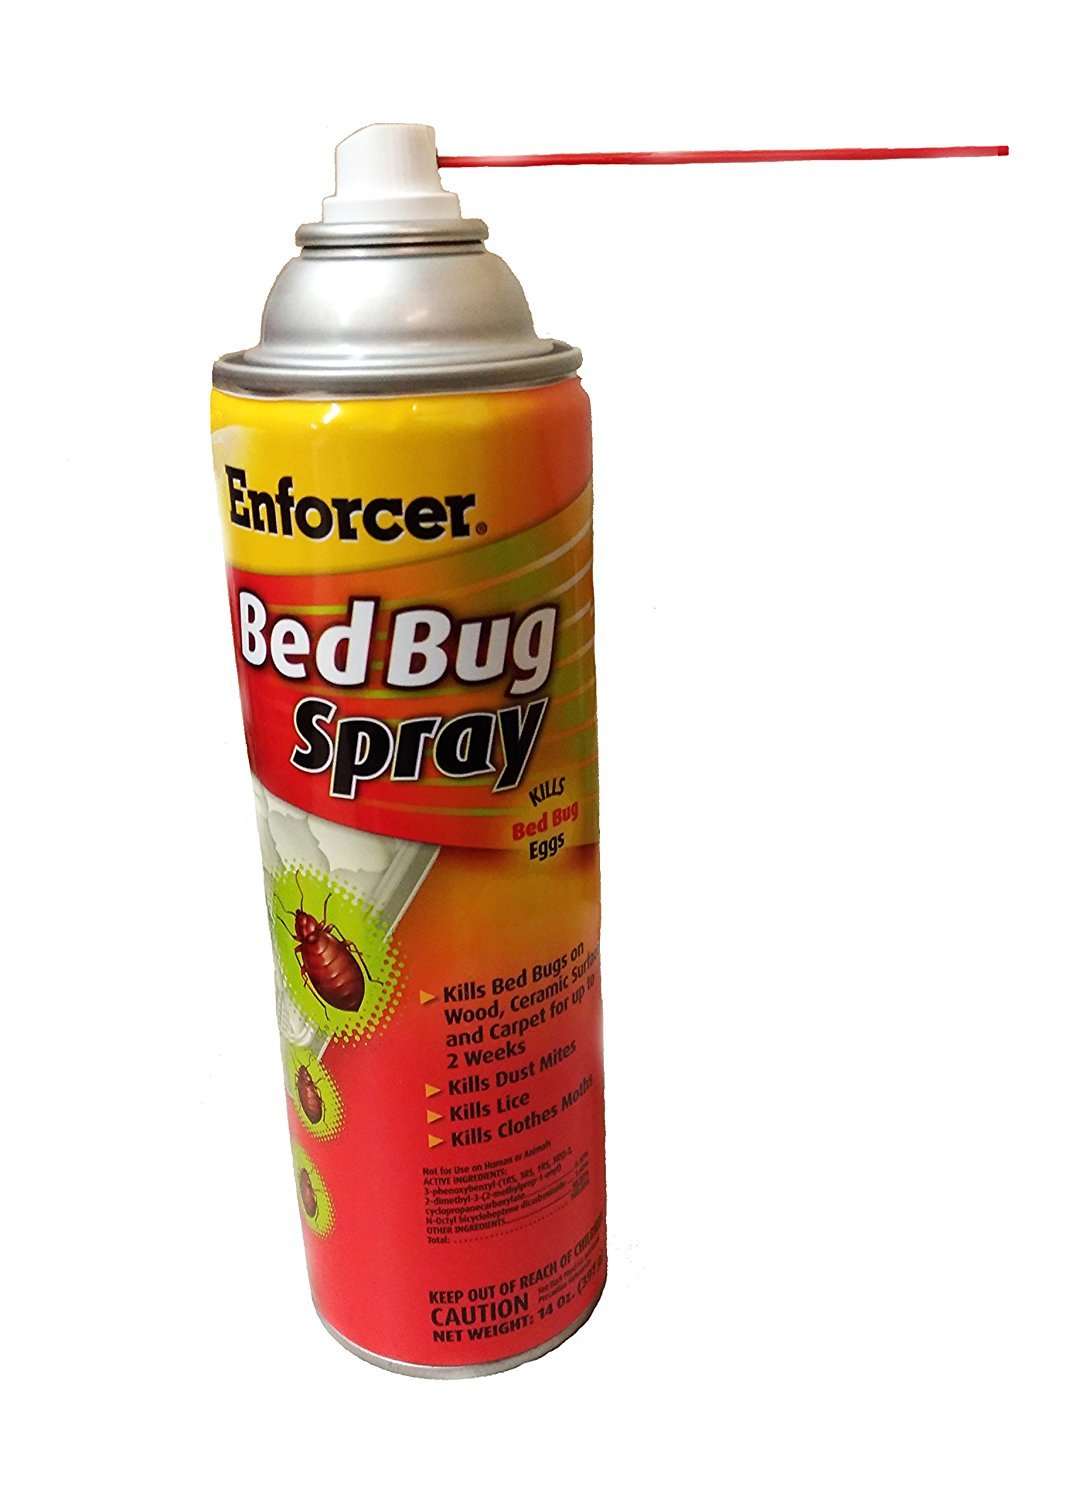 Amazon.com : EBBK14 - Enforcer Bed Bug Spray; Kills Bed Bugs, Dust Mites, Lice, Moths, and Bed Bug Eggs : Garden & Outdoor